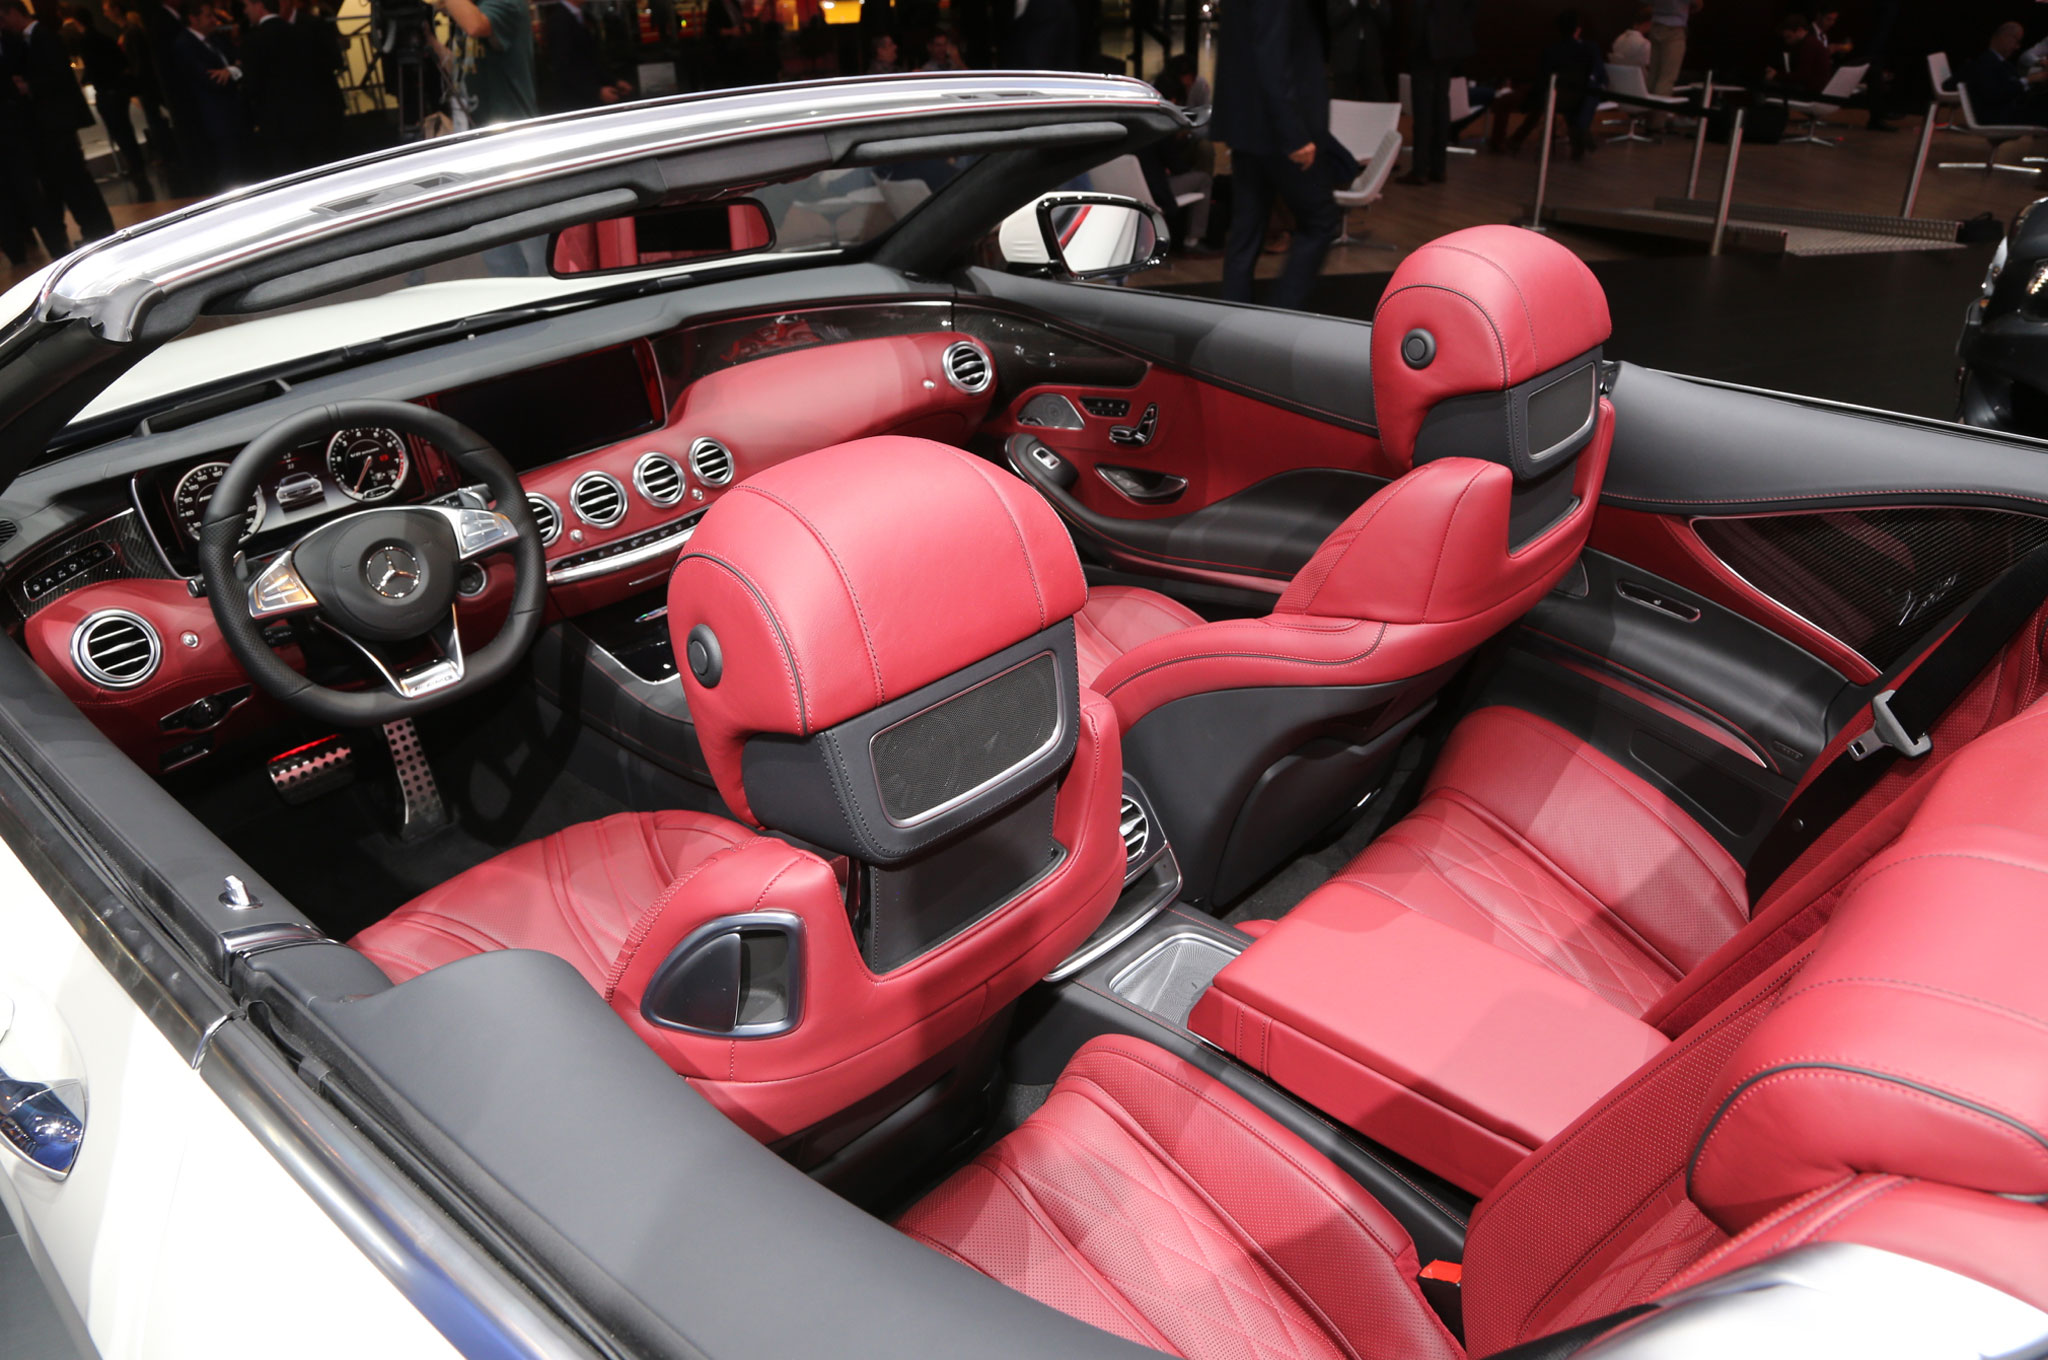 https://enthusiastnetwork.s3.amazonaws.com/uploads/sites/5/2015/08/Mercedes-AMG-S63-Cabriolet-front-and-rear-seats.jpg?impolicy=entryimage